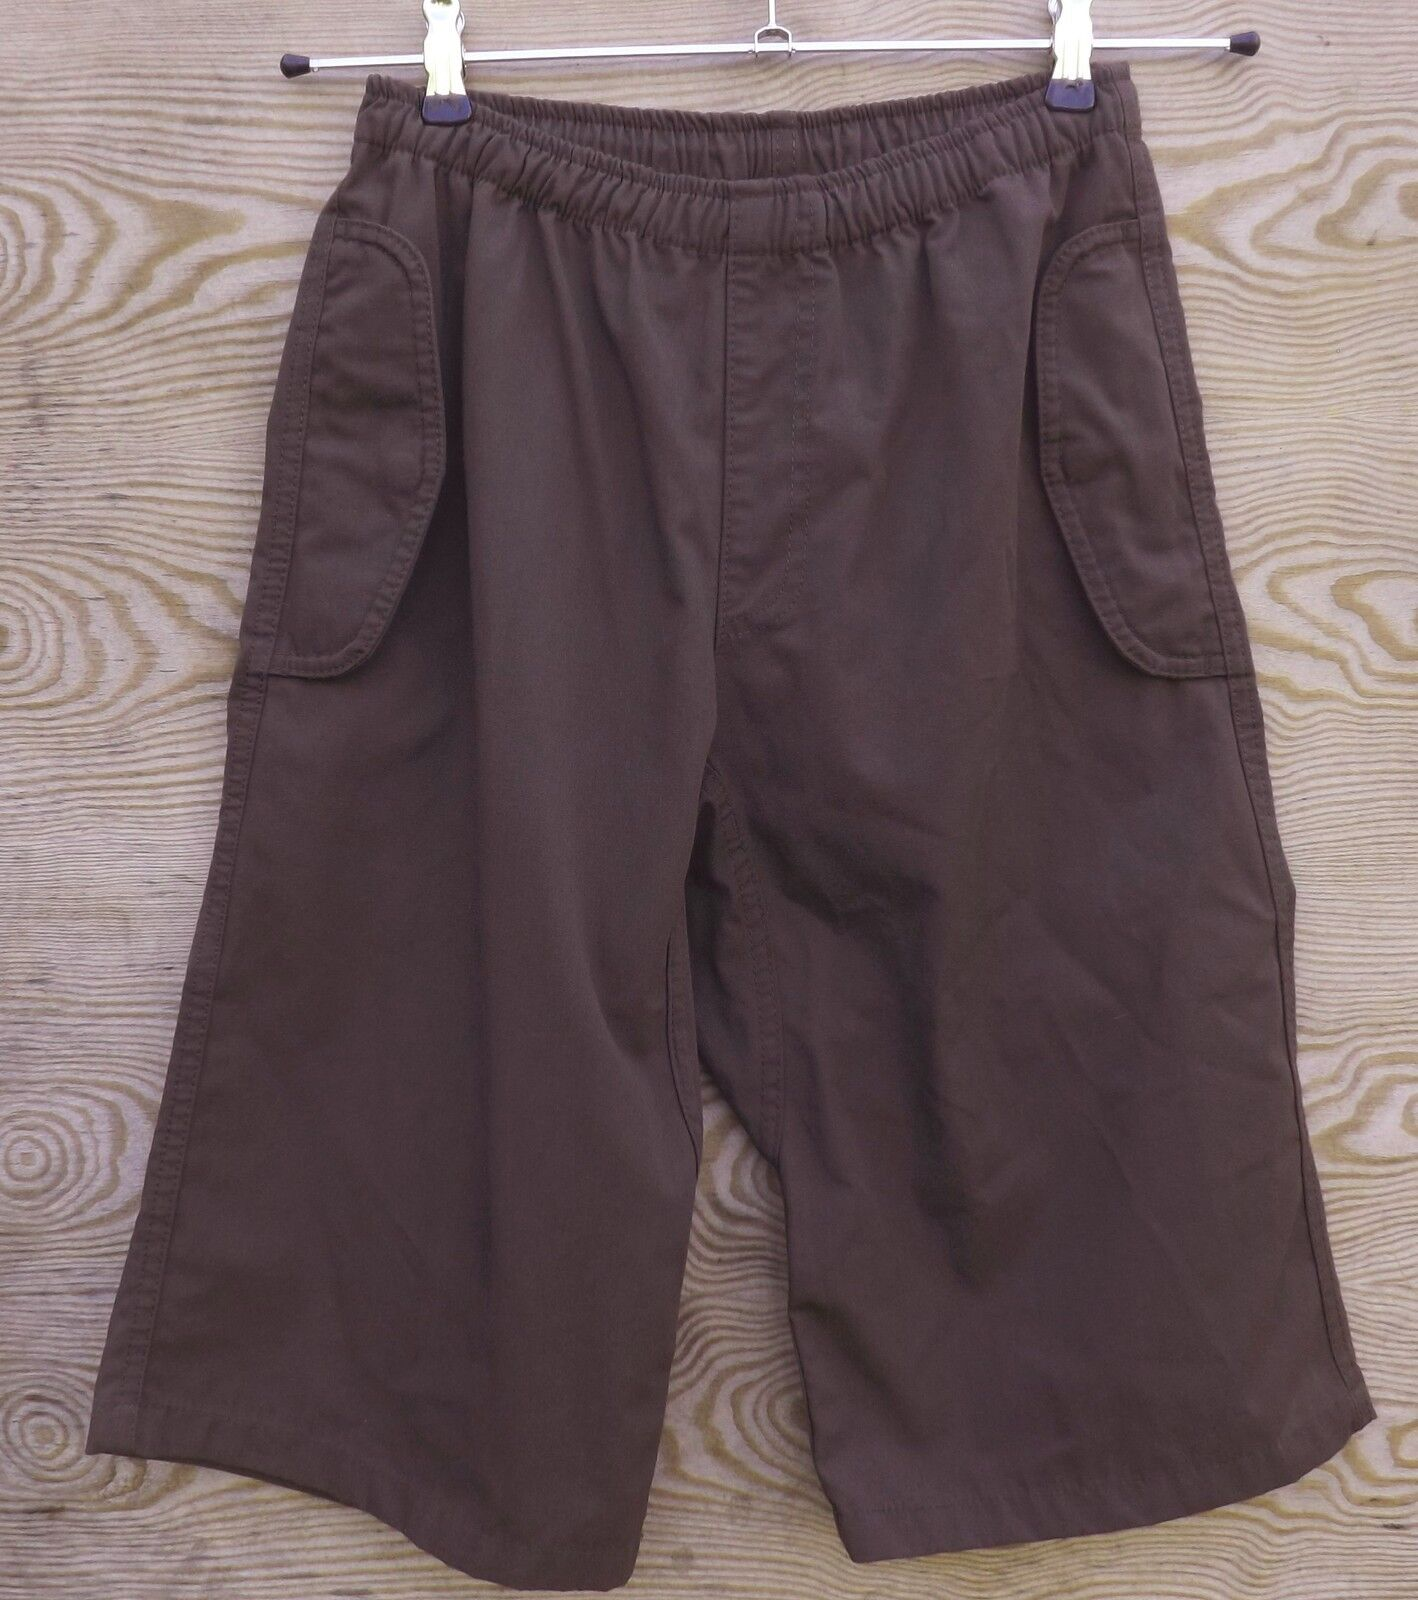 Moon cypher  shorts, Climbing Shorts for Men, Brown  lowest whole network